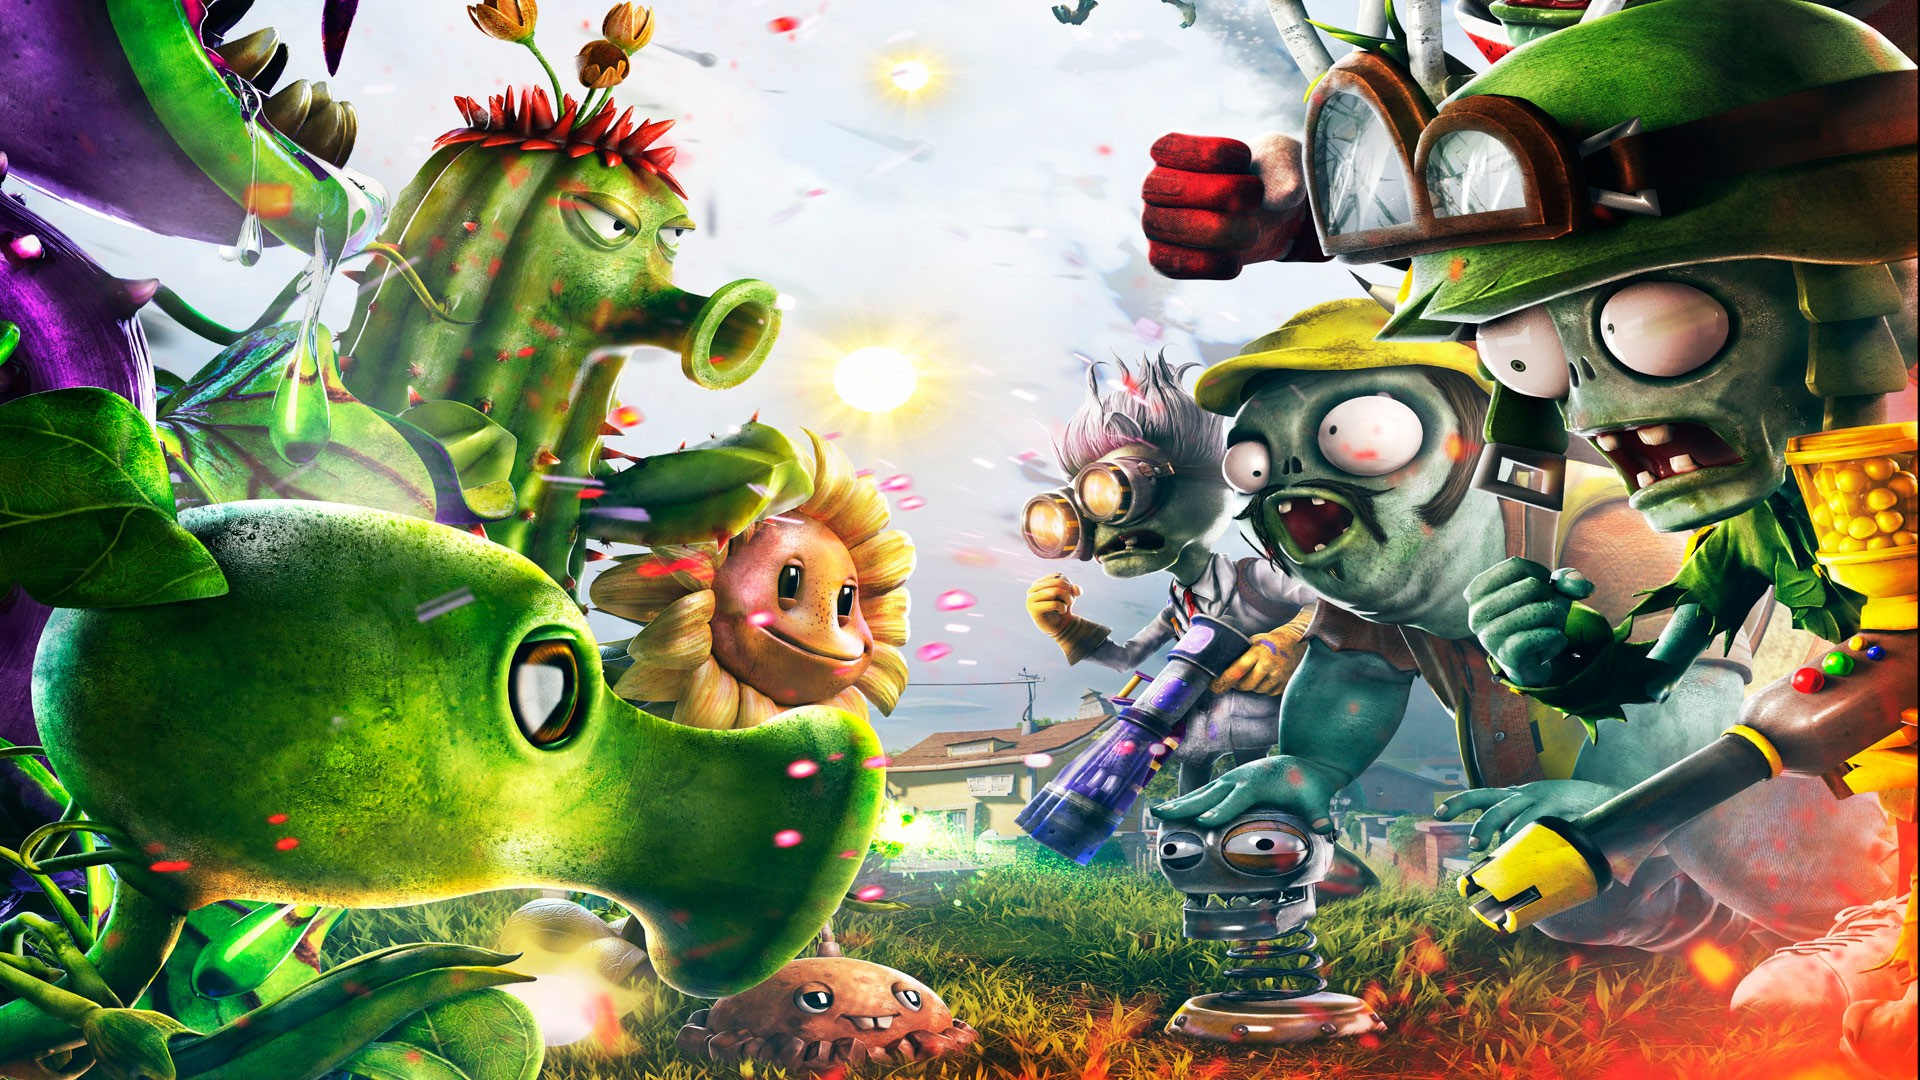 Plants Vs Zombies Garden Warfare Hd Wallpaper Background Image 1920x1080 Id 419230